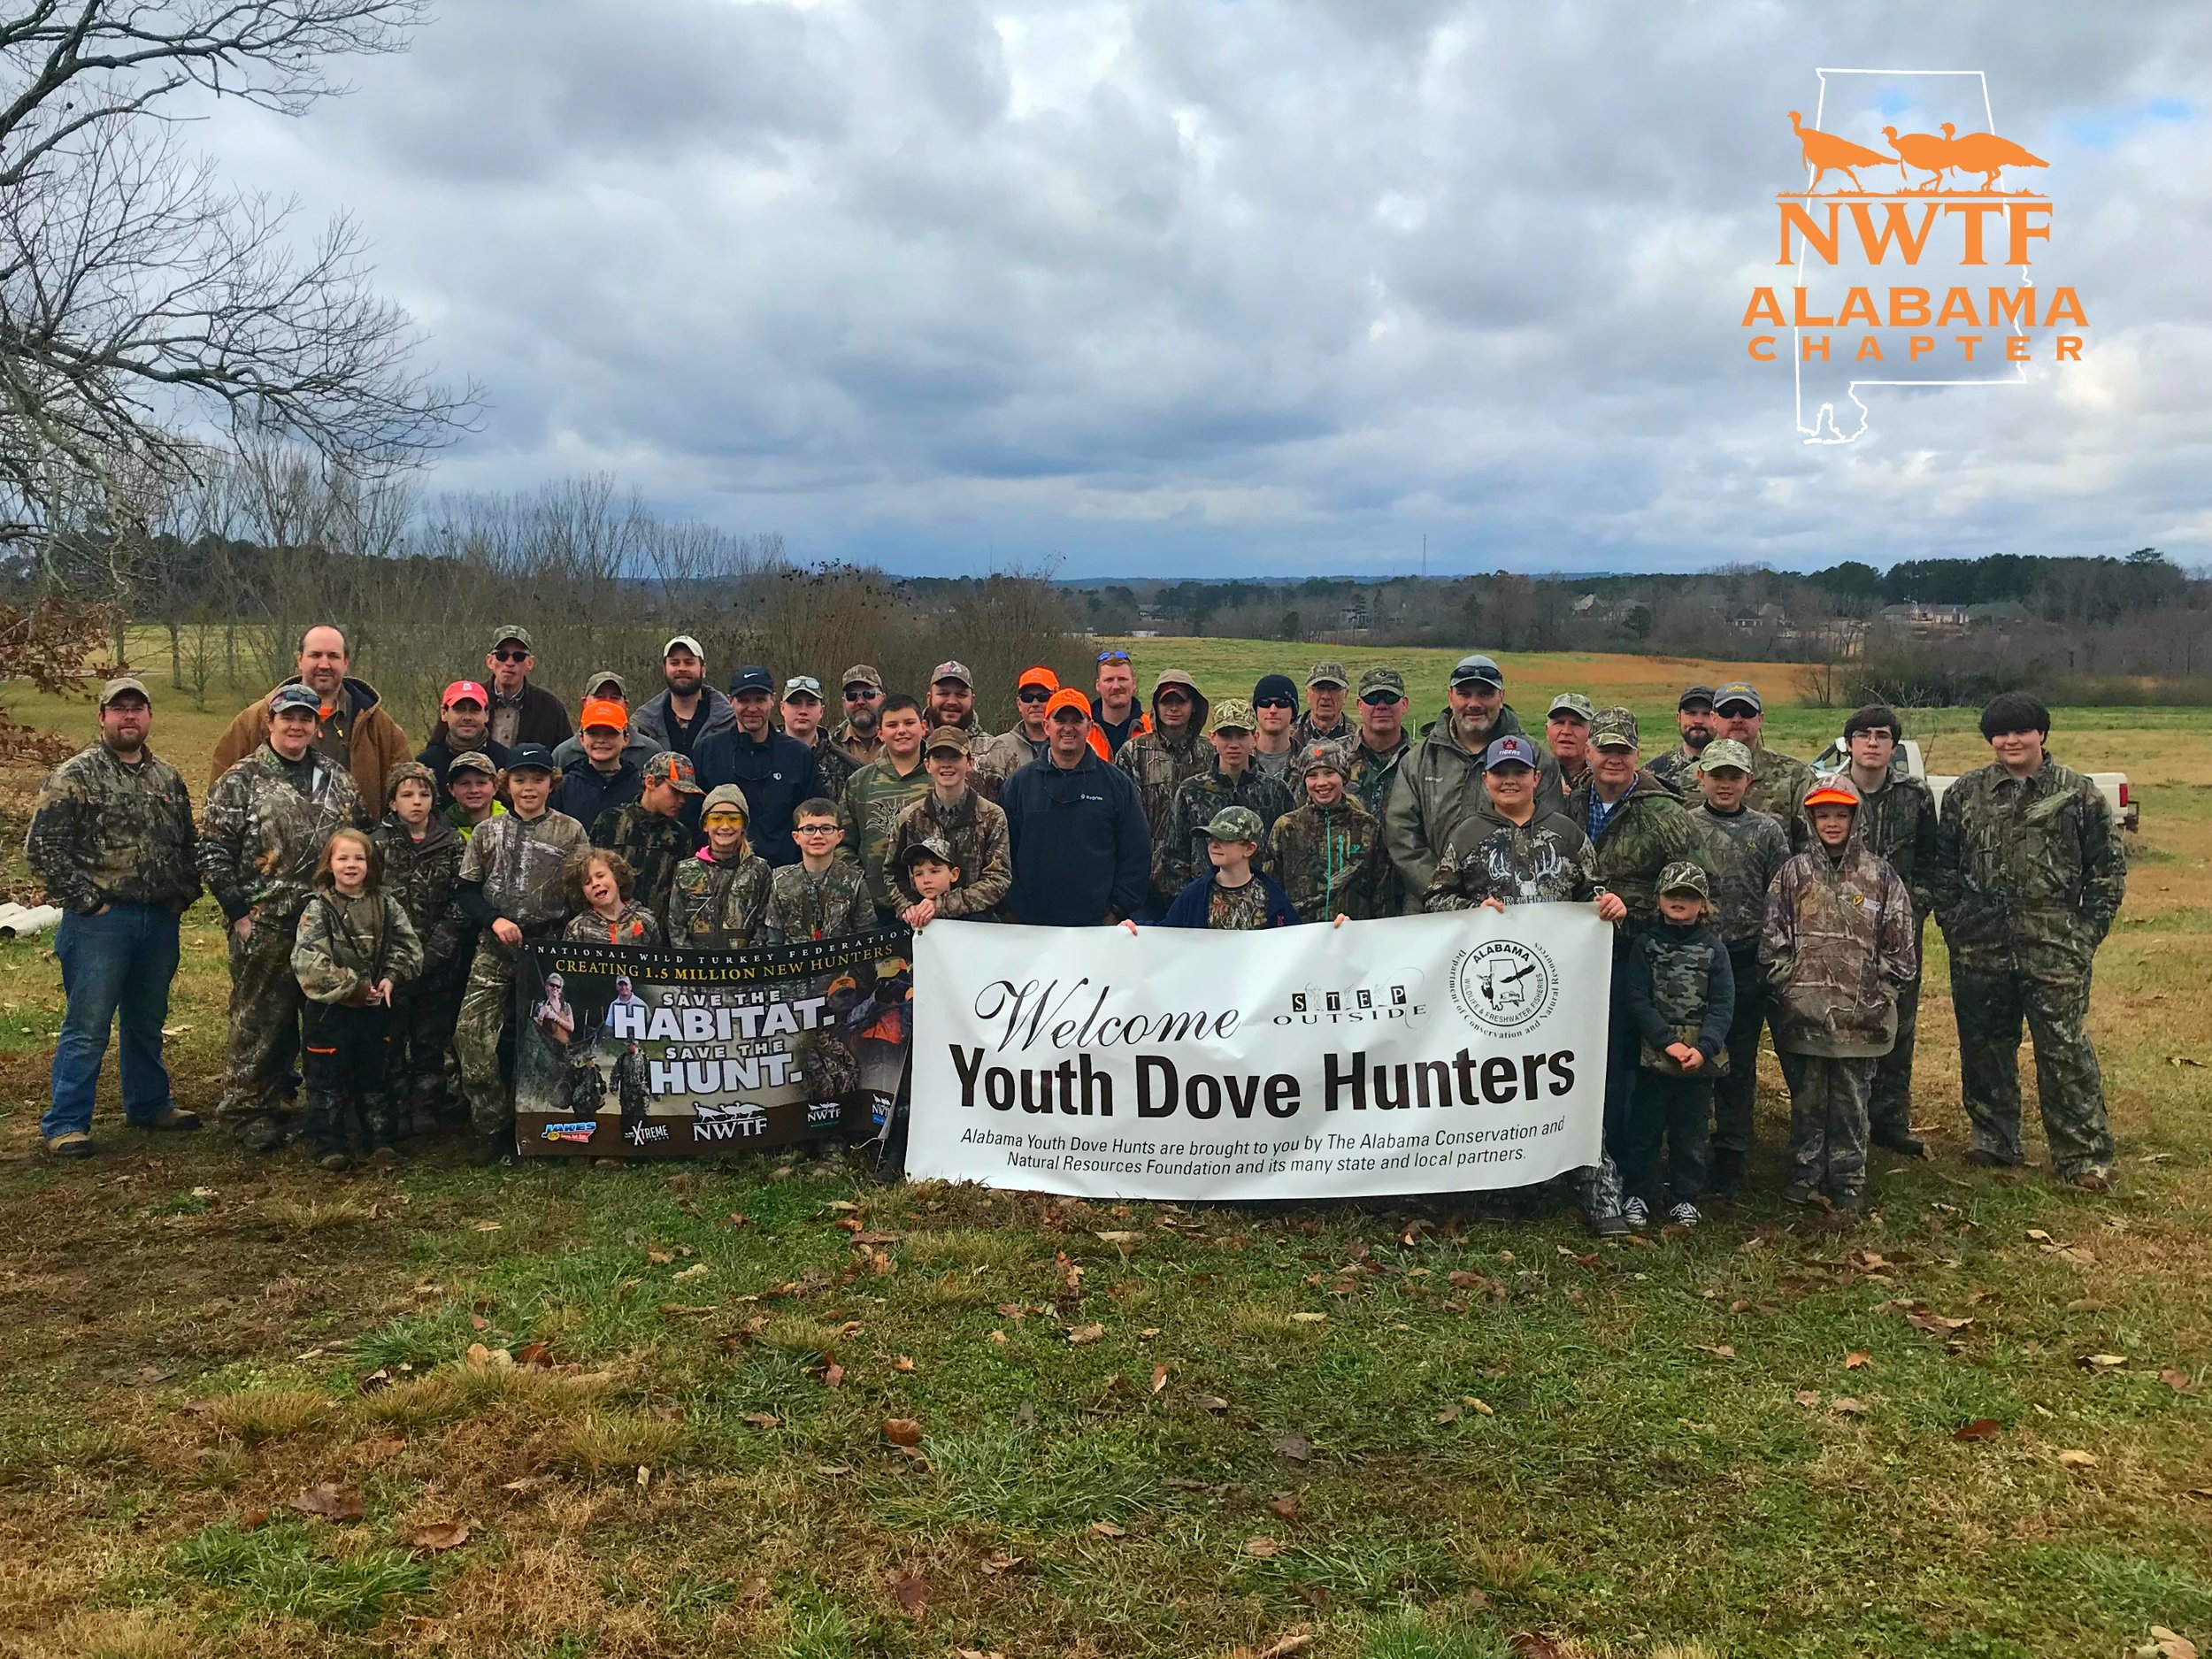 Cullman County ALDCNR Winter Youth Dove Hunt.jpg